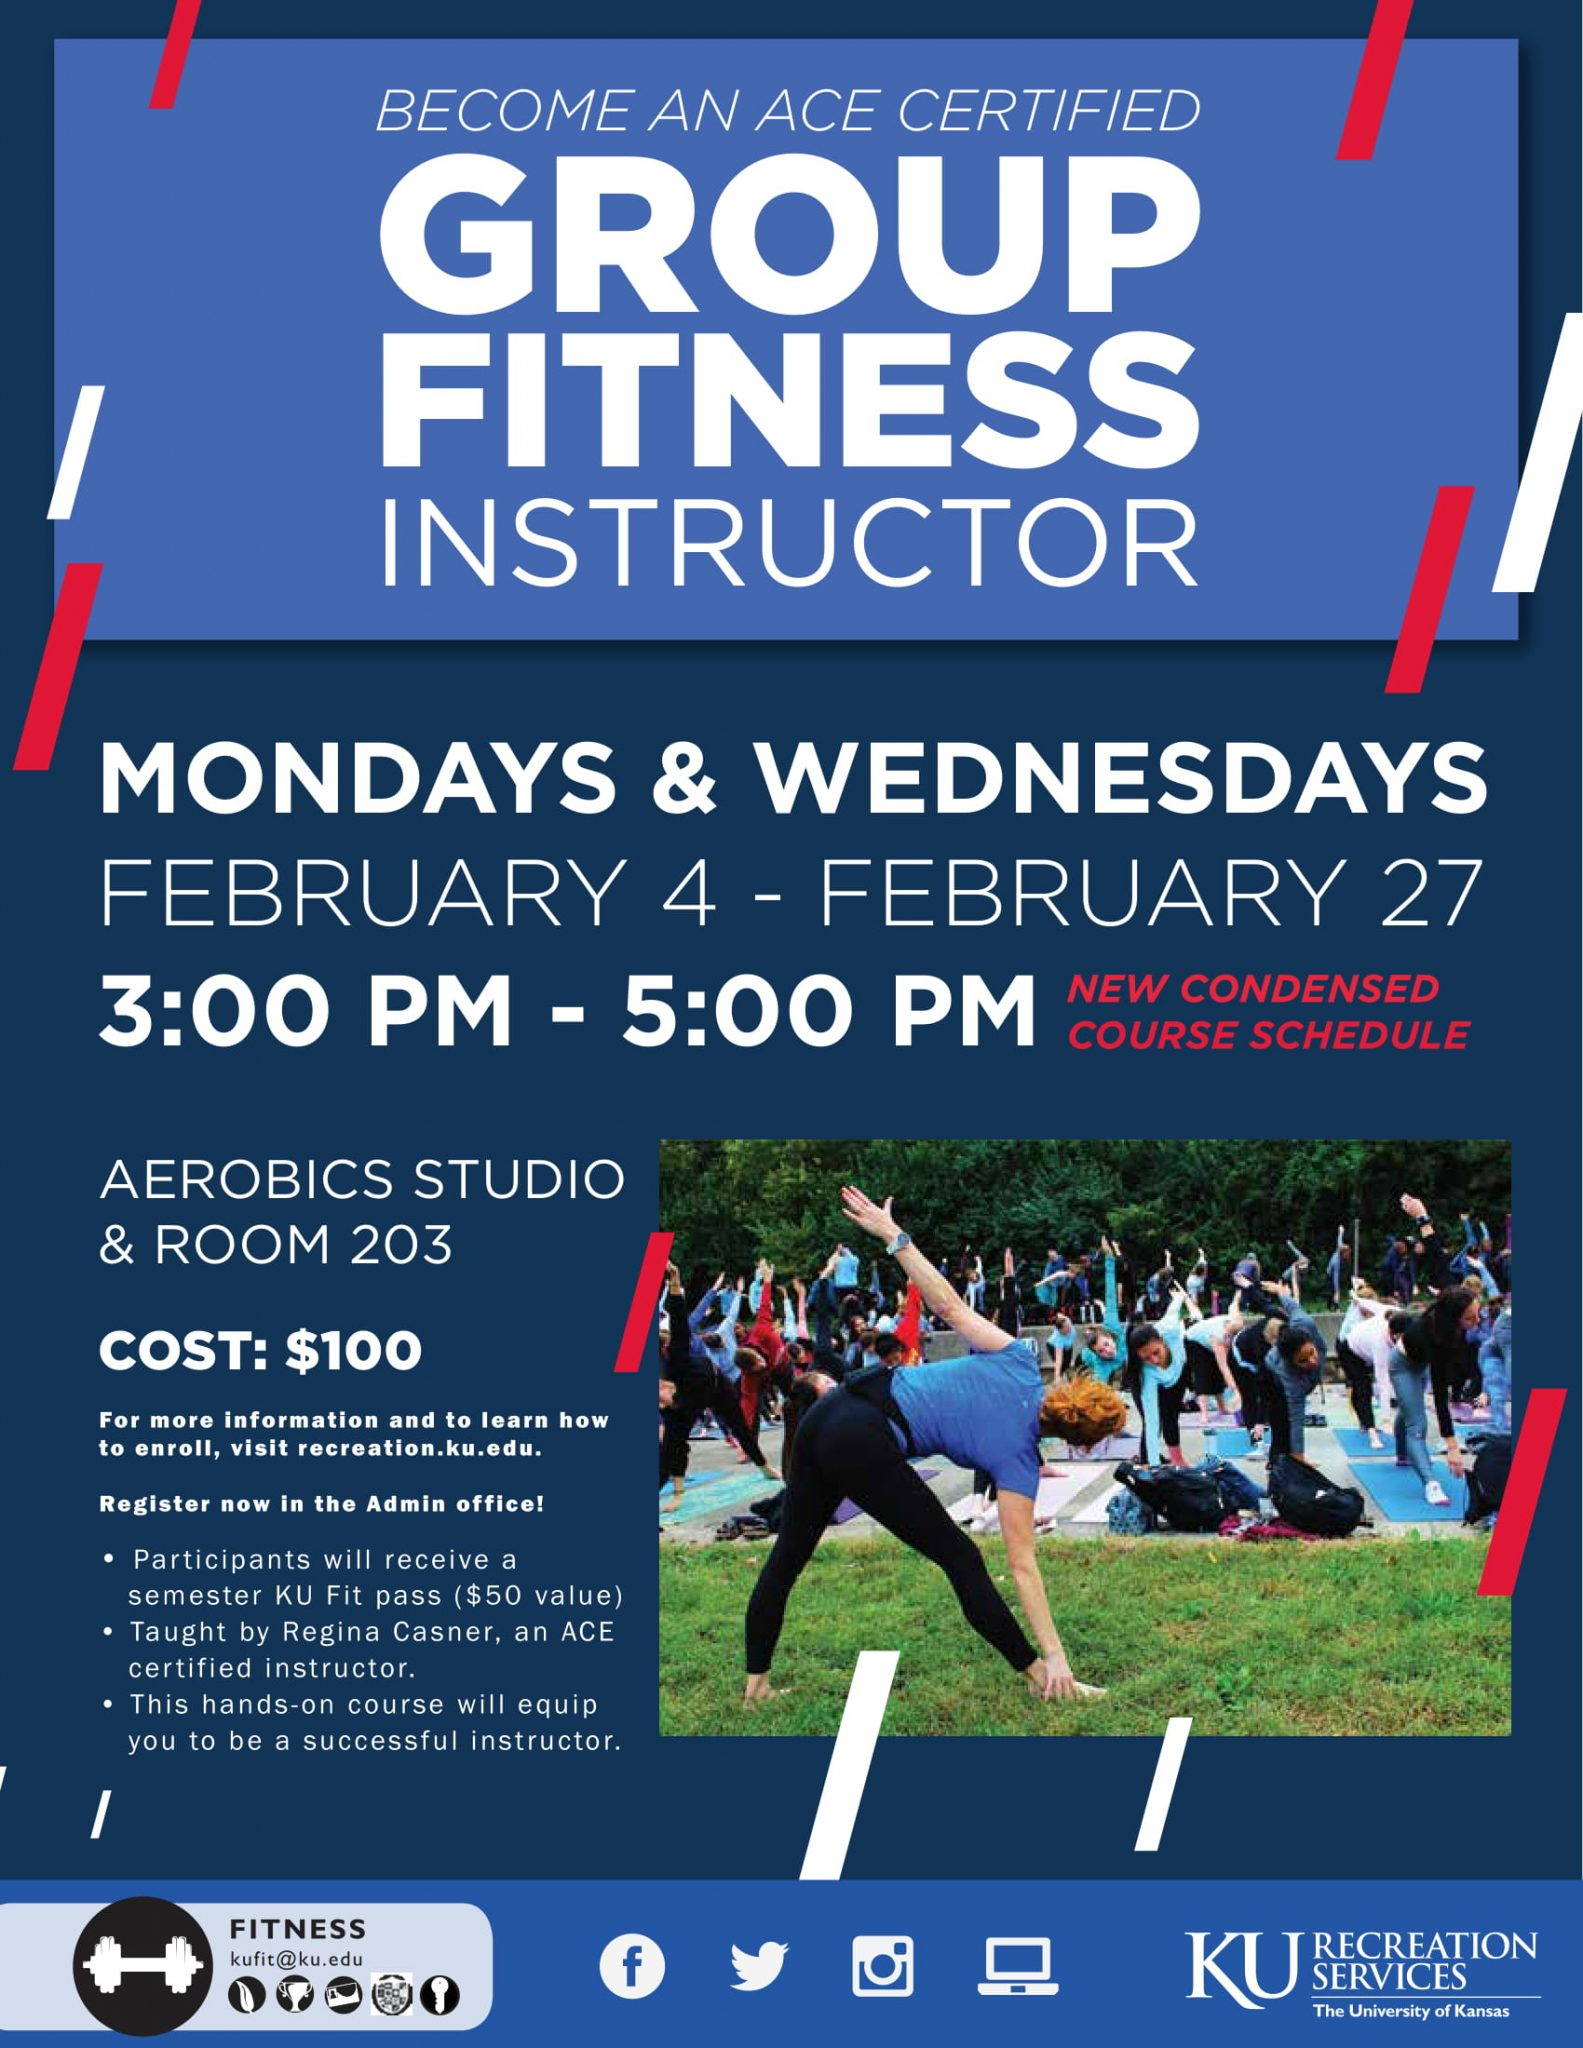 Updates to the ACE Group Fitness Prep Course